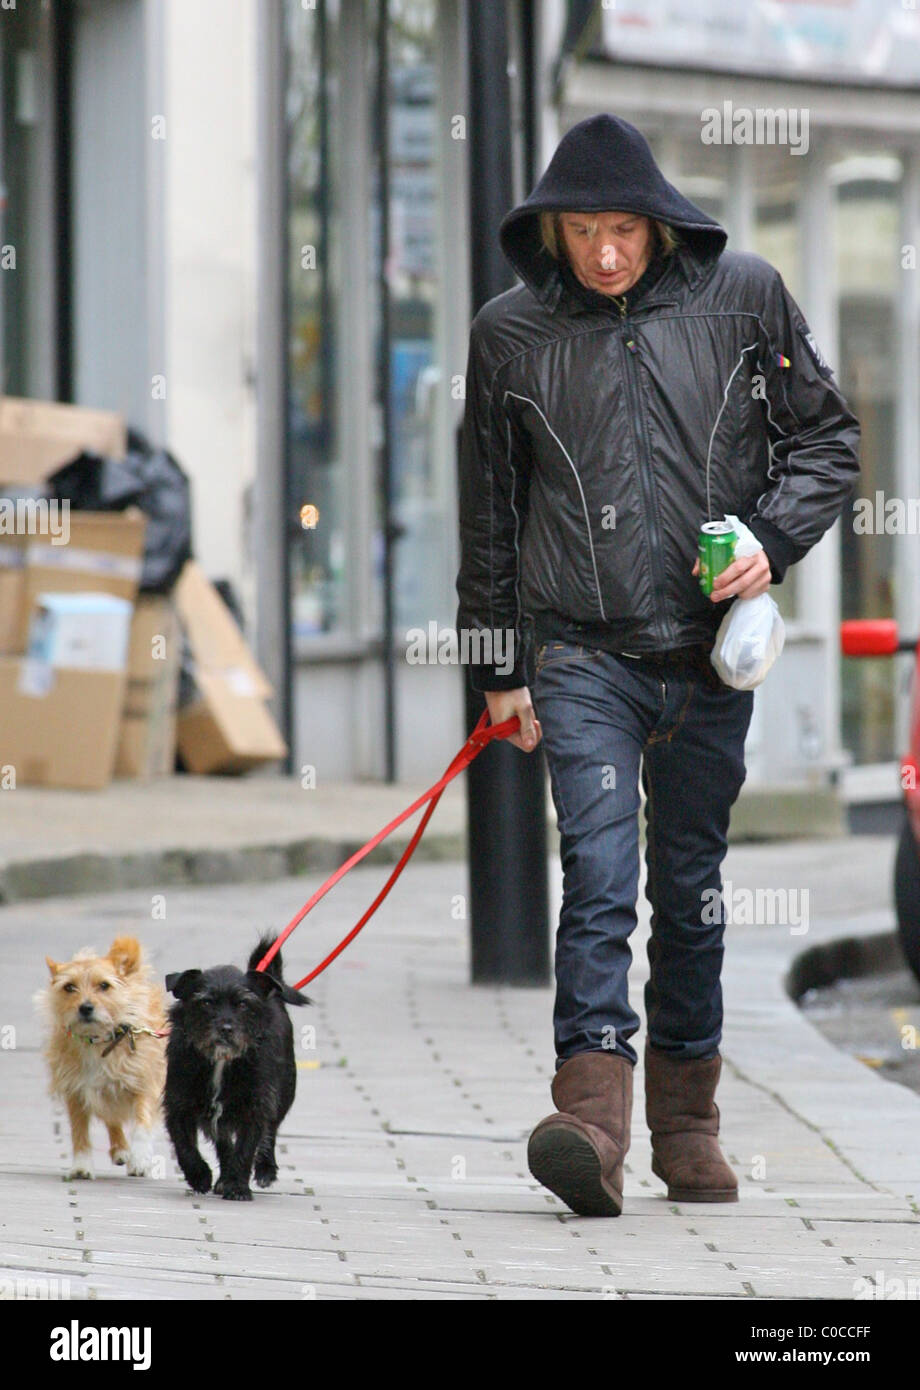 Rhys Ifans takes Sienna Miller's dogs Porgy and Bess out for a walk with him to the shops London, England - - Stock Image